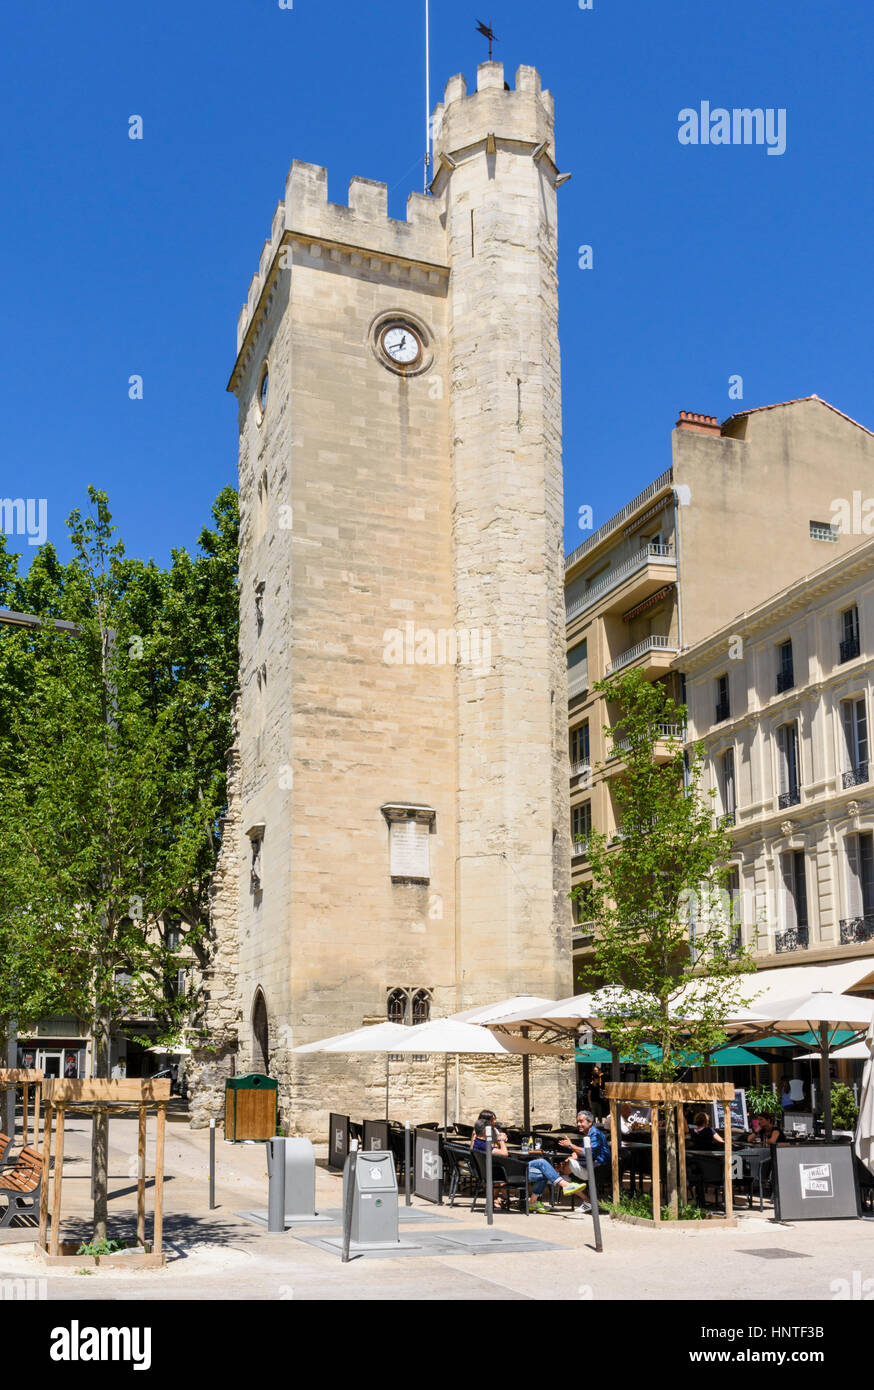 The Tower of Saint John in Place Pie, Avignon, France - Stock Image